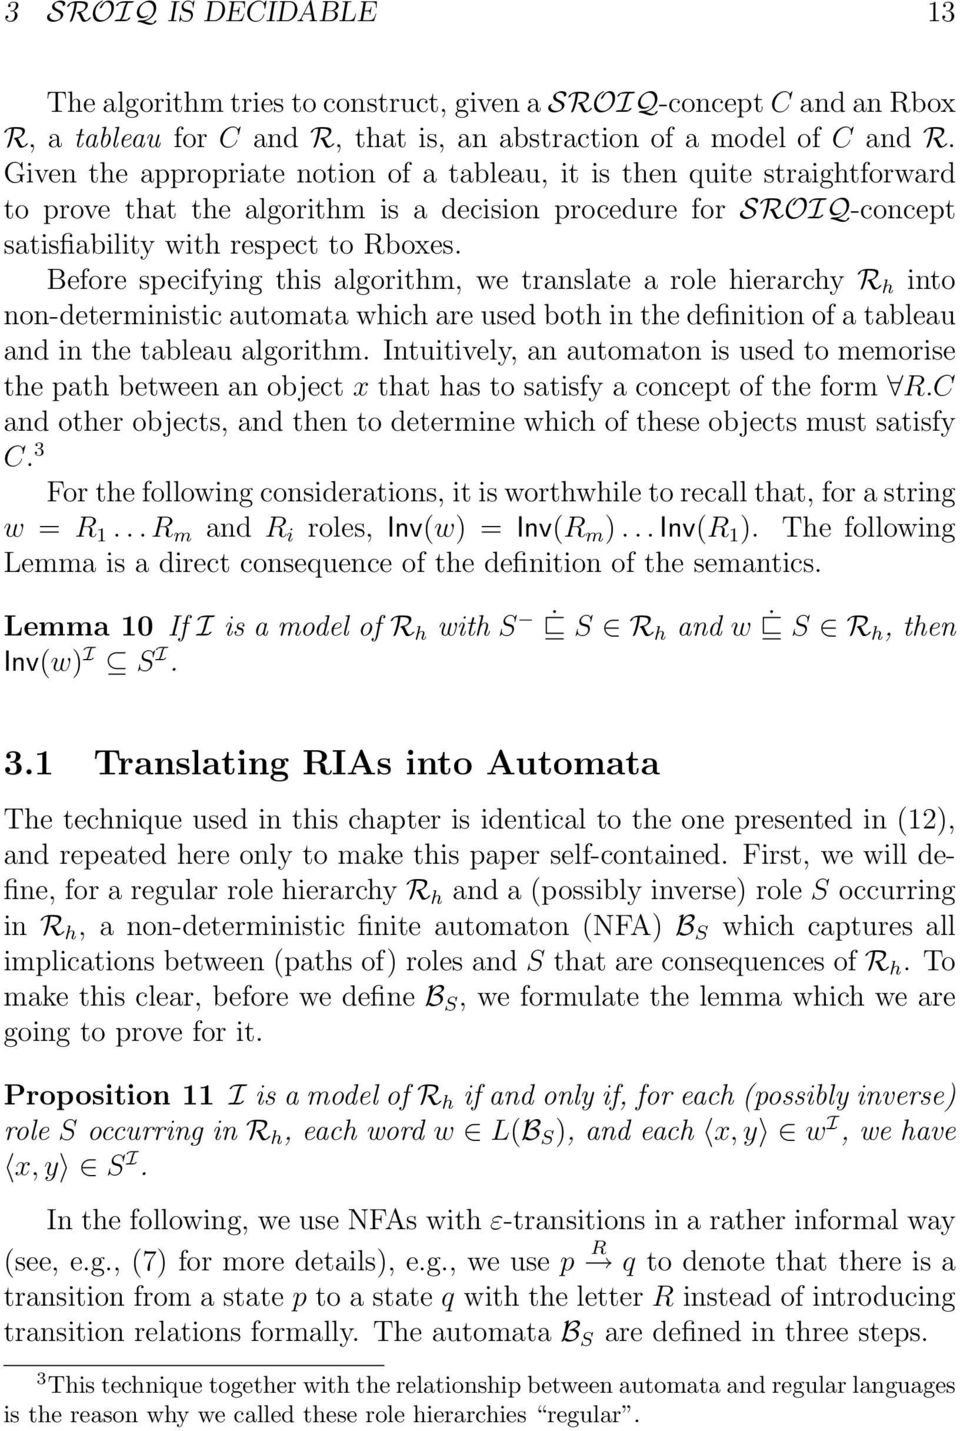 role hierarchy R h into non-deterministic automata which are used both in the definition of a tableau and in the tableau algorithm Intuitively, an automaton is used to memorise the path between an